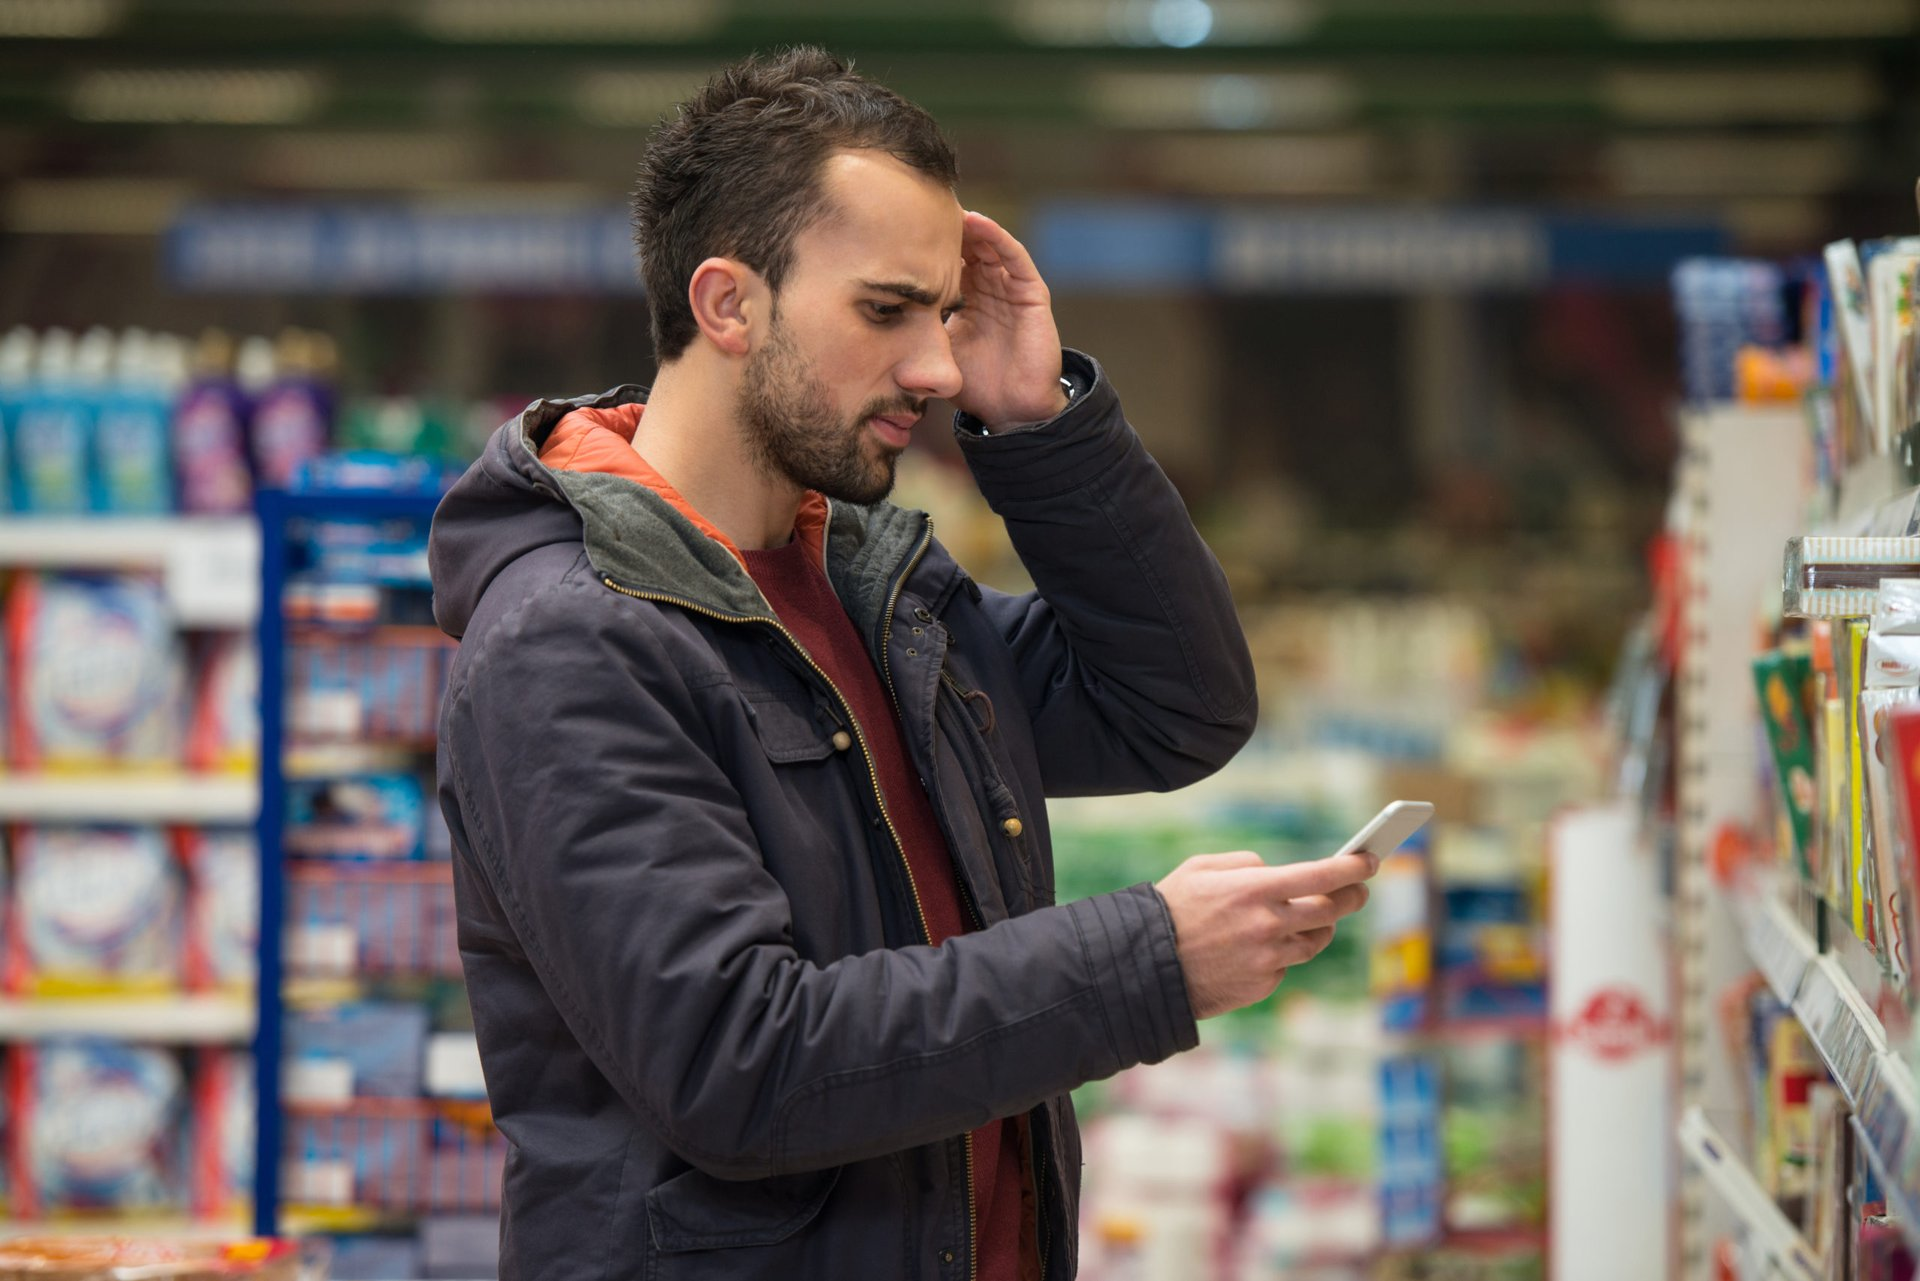 Curious man shopping for groceries